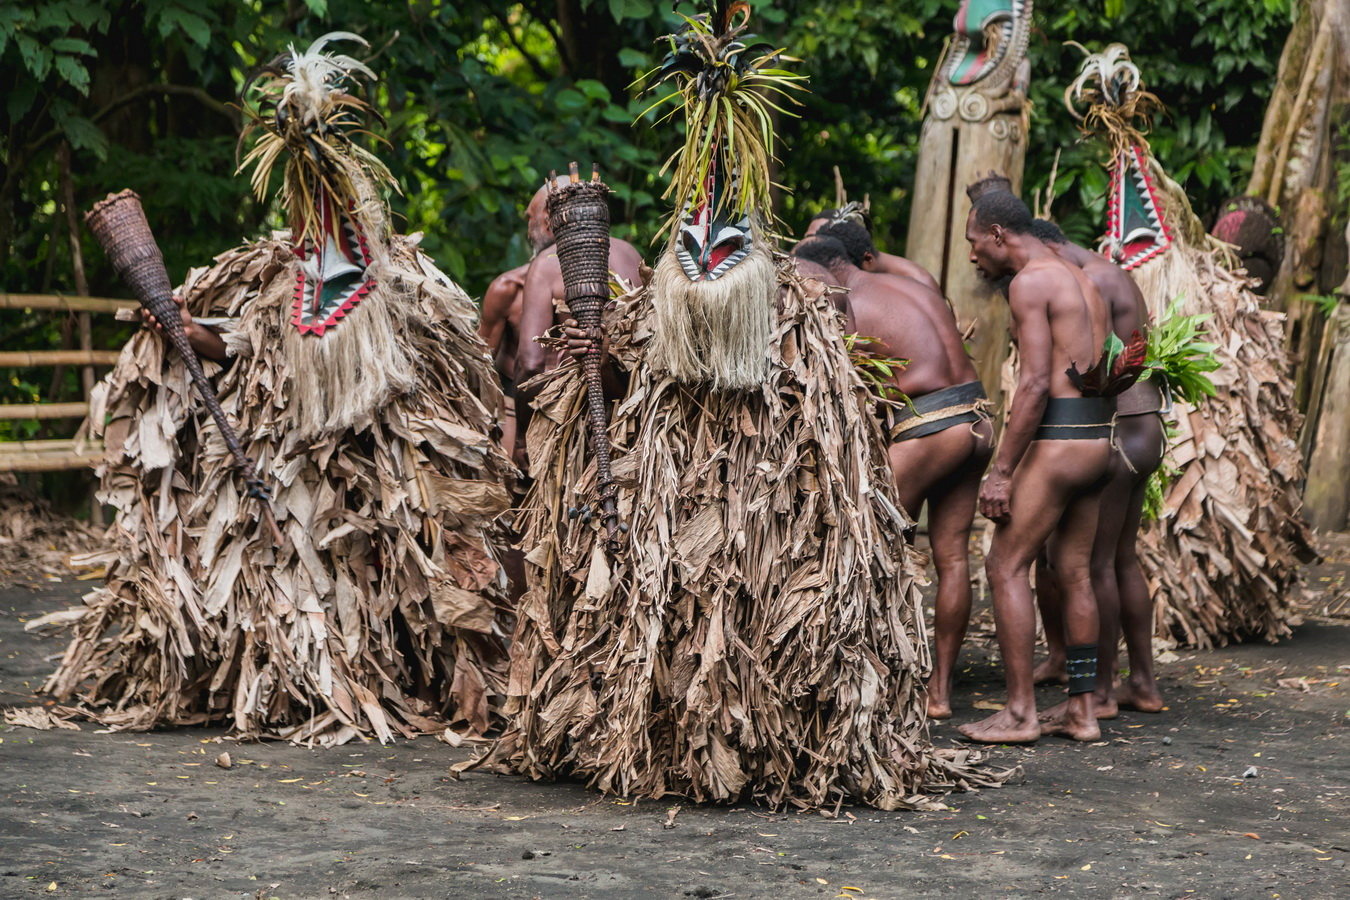 tradition,Rom dances,Fanla, north Ambrym, Ambrym, Vanuatu